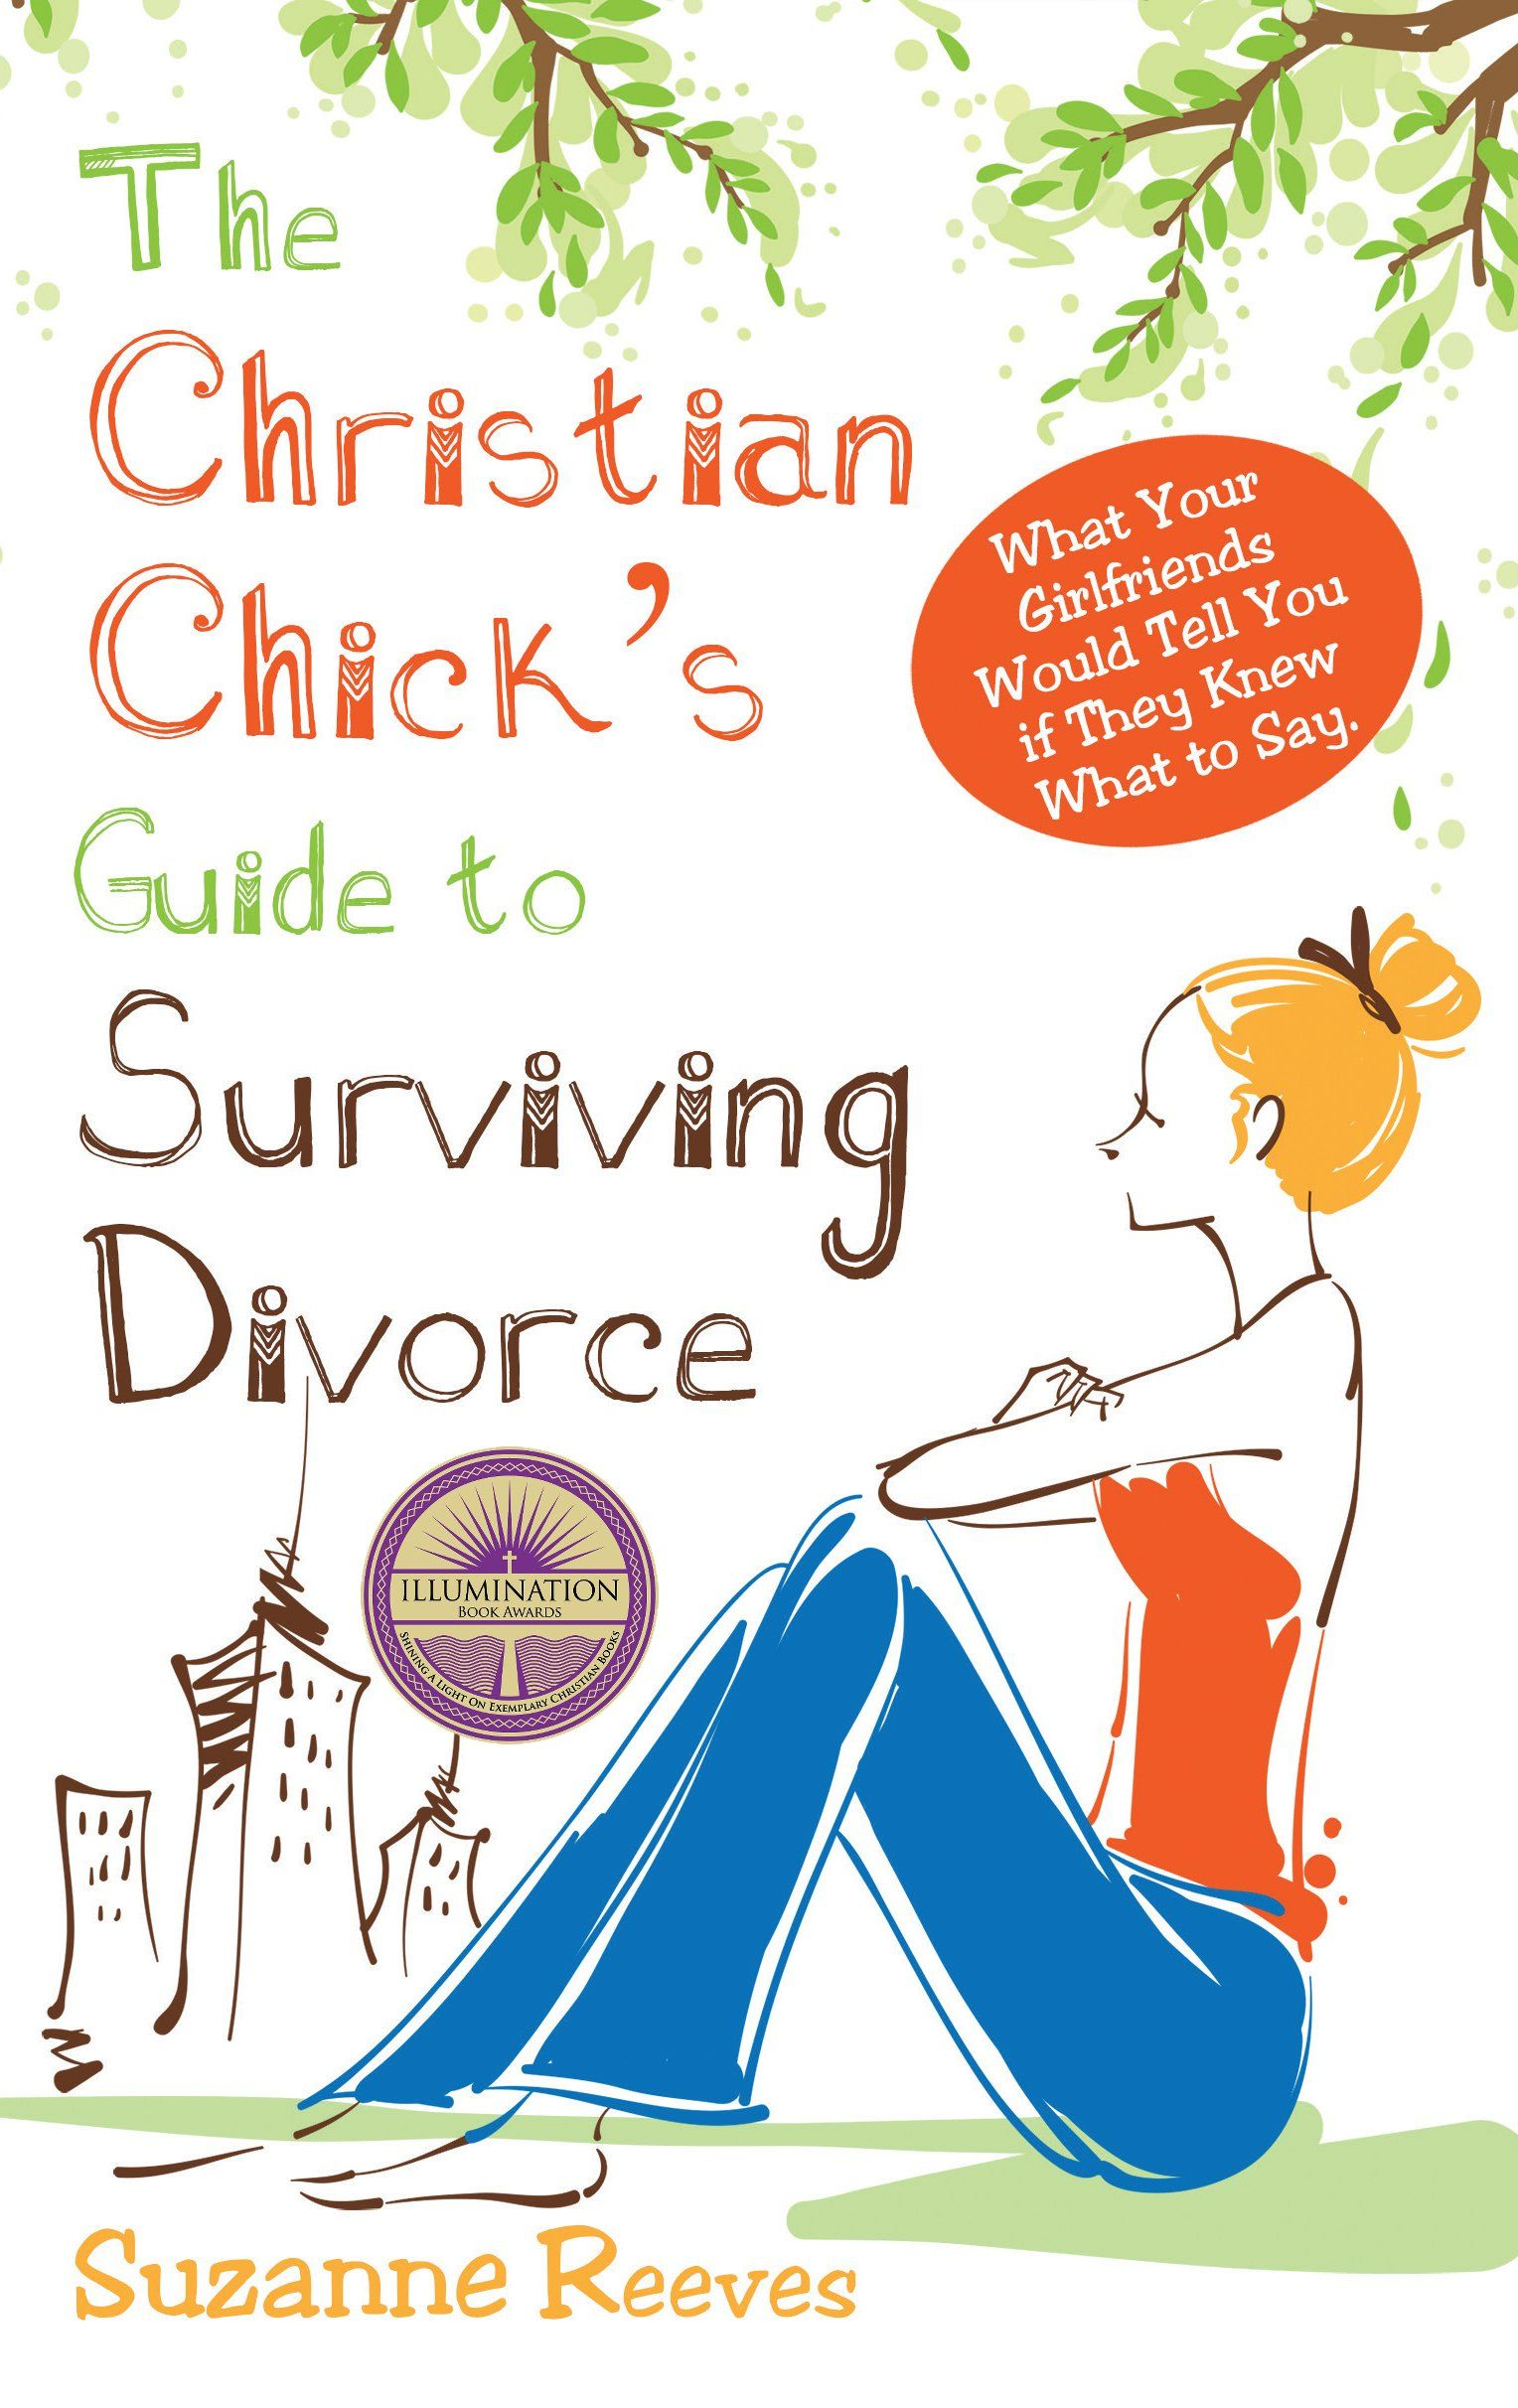 Christian Chick's Guide to Surviving Divorce. I know the title sounds cheesy but trust me, this book is awesome! Really really great stuff about surviving divorce and how to cope with it as a Christian.